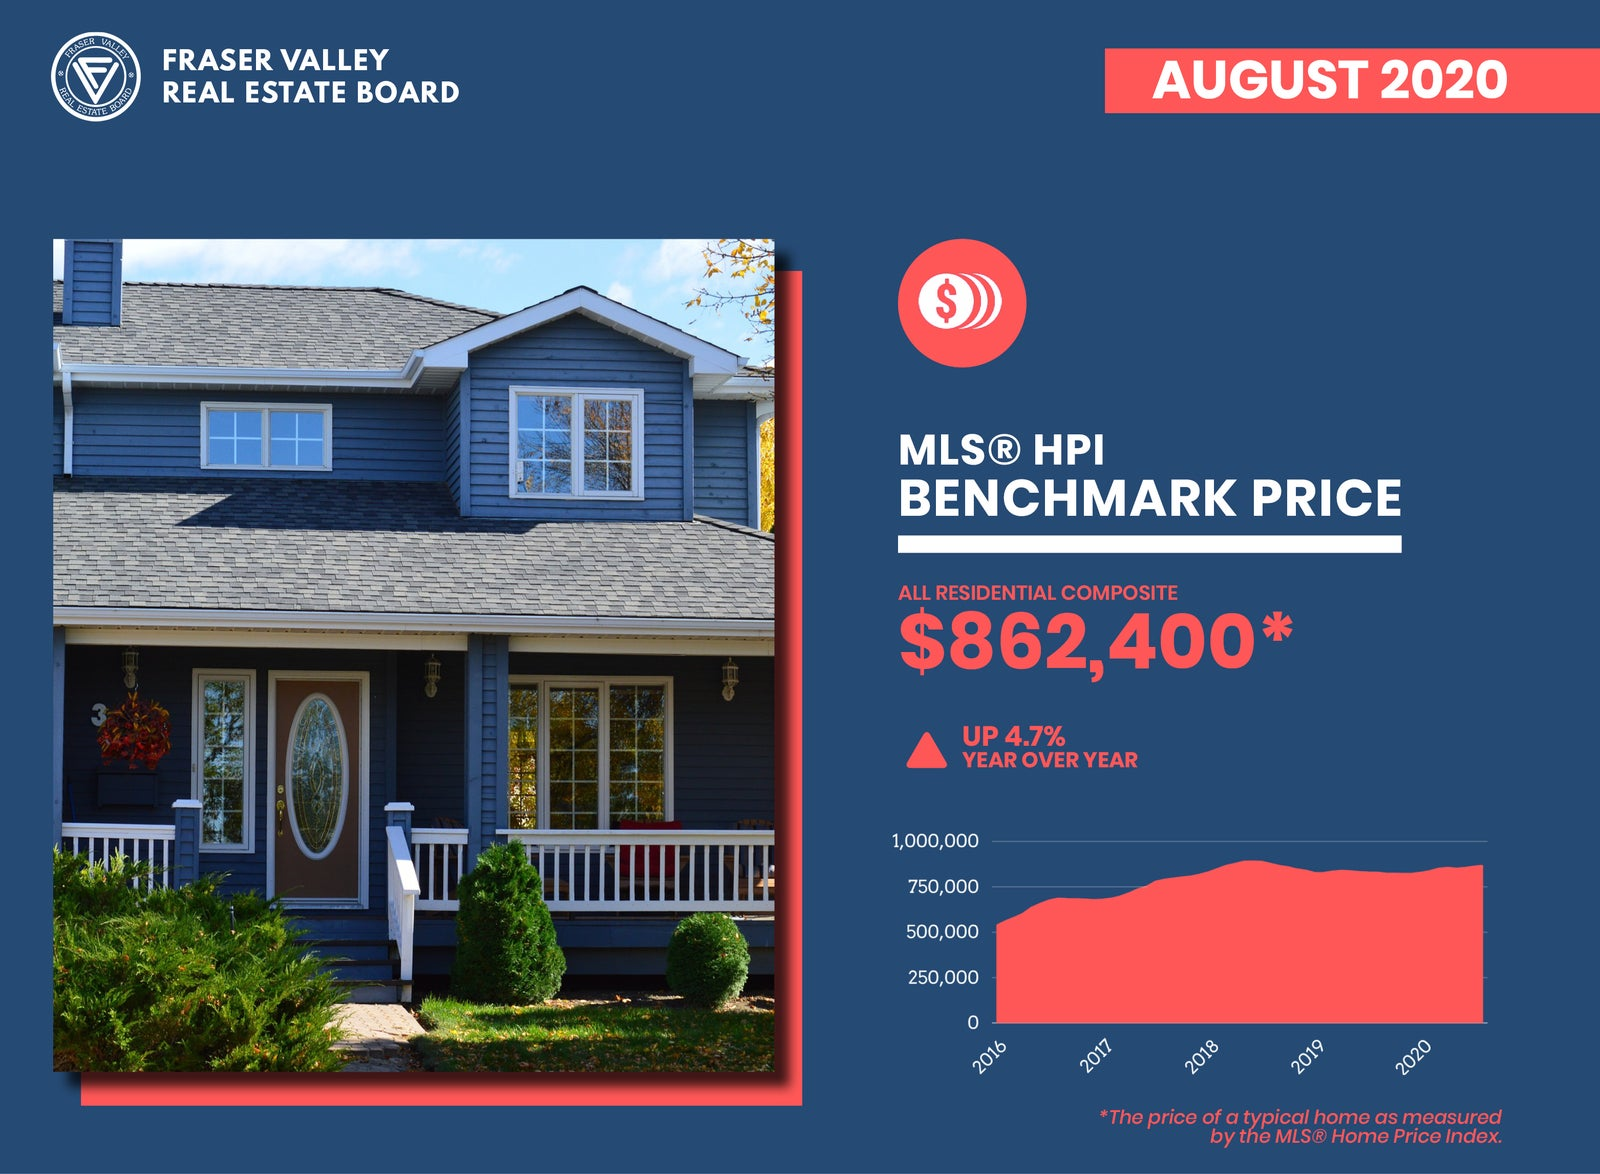 FVREB Residential Home Sales Benchmark Price - August 2020